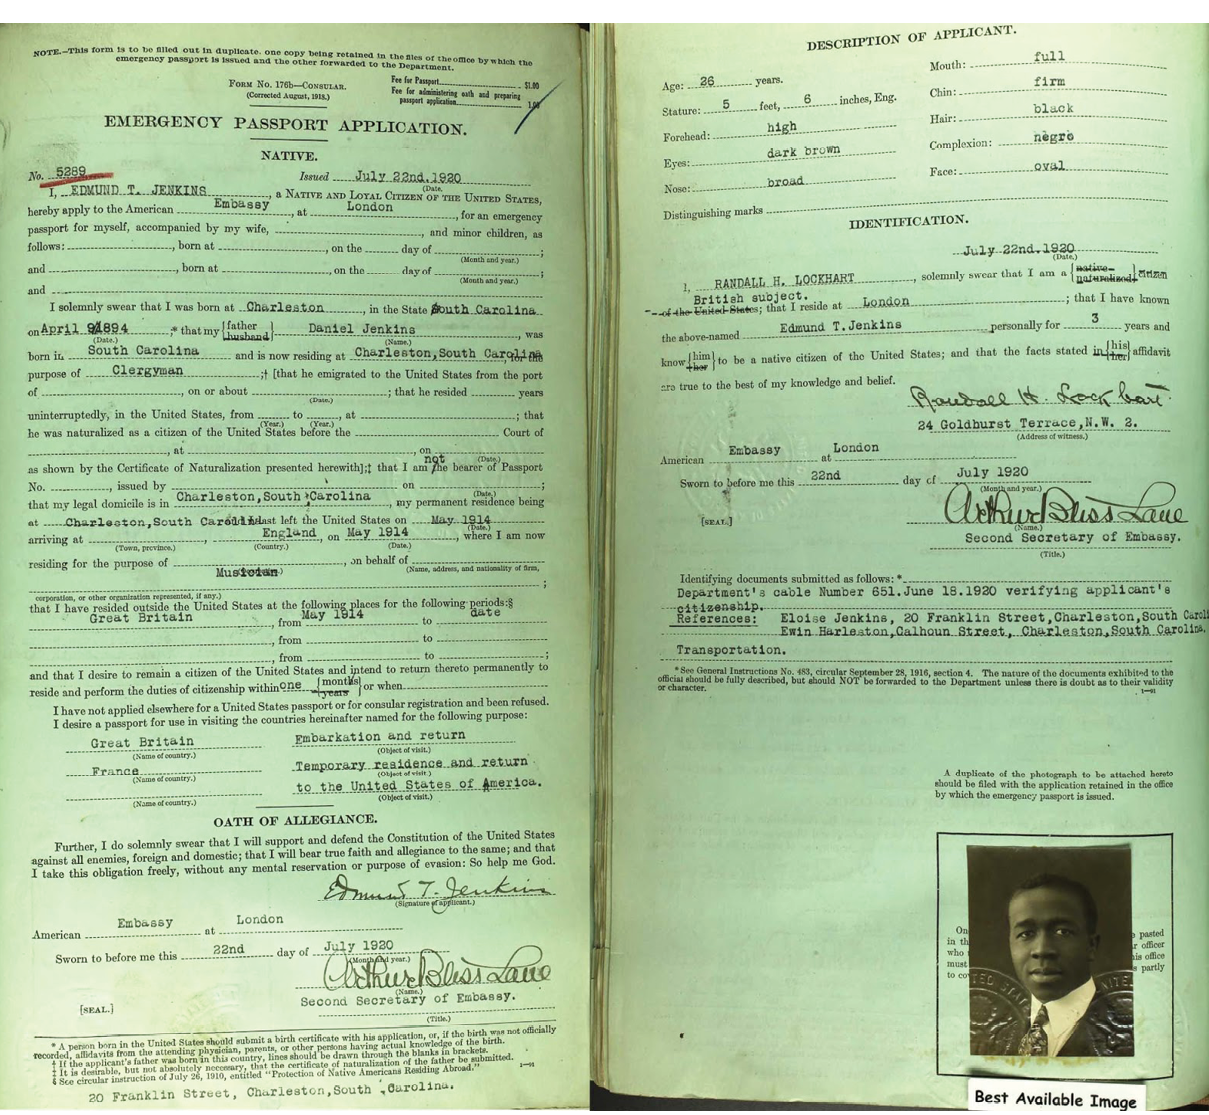 Jenkins's 1920 passport allowed him to travel to Paris